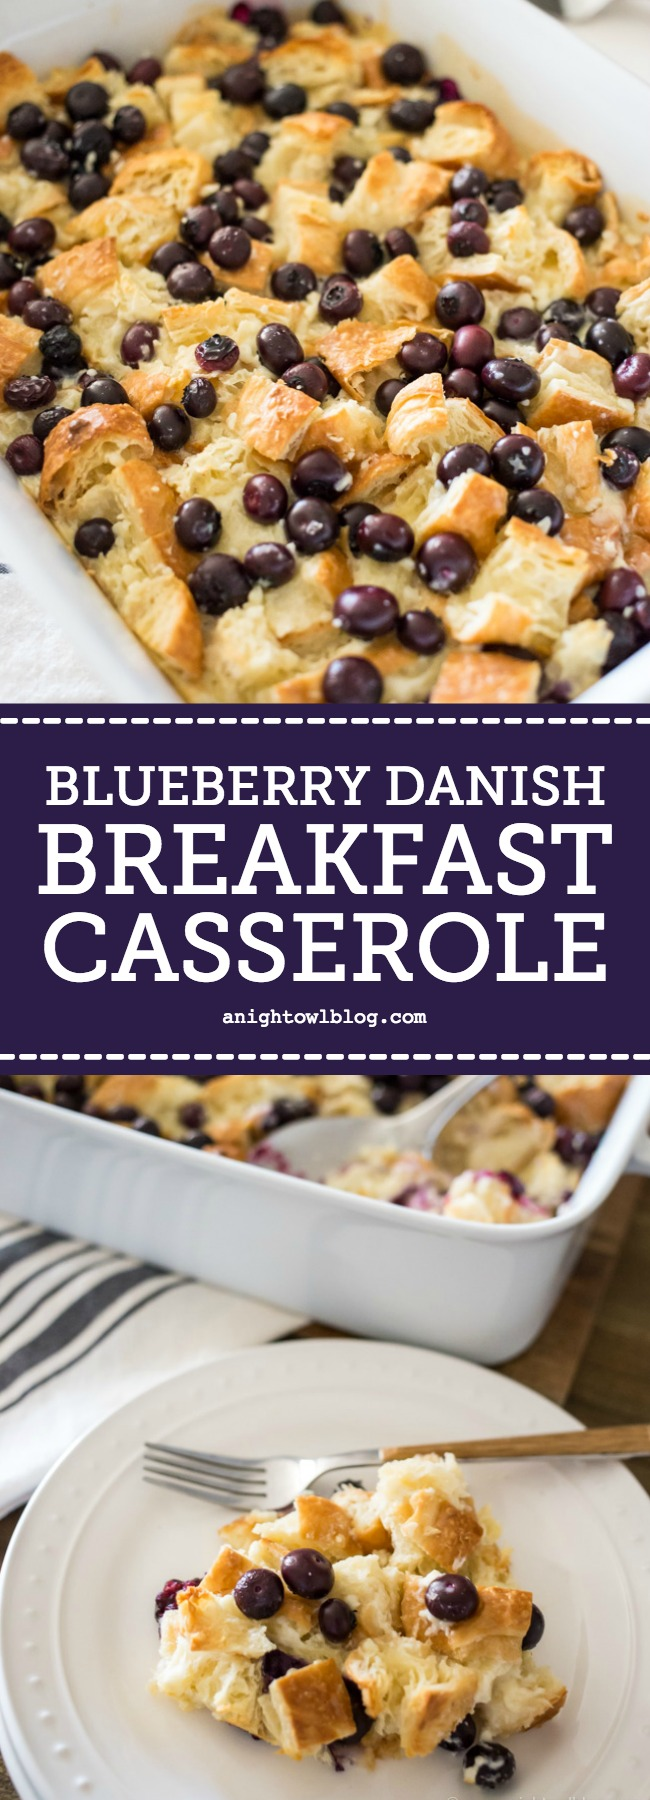 A breakfast casserole made with croissants, cream cheese and fresh blueberries, this Easy Blueberry Danish Breakfast Casserole will be the hit with your family and guests at your next brunch!